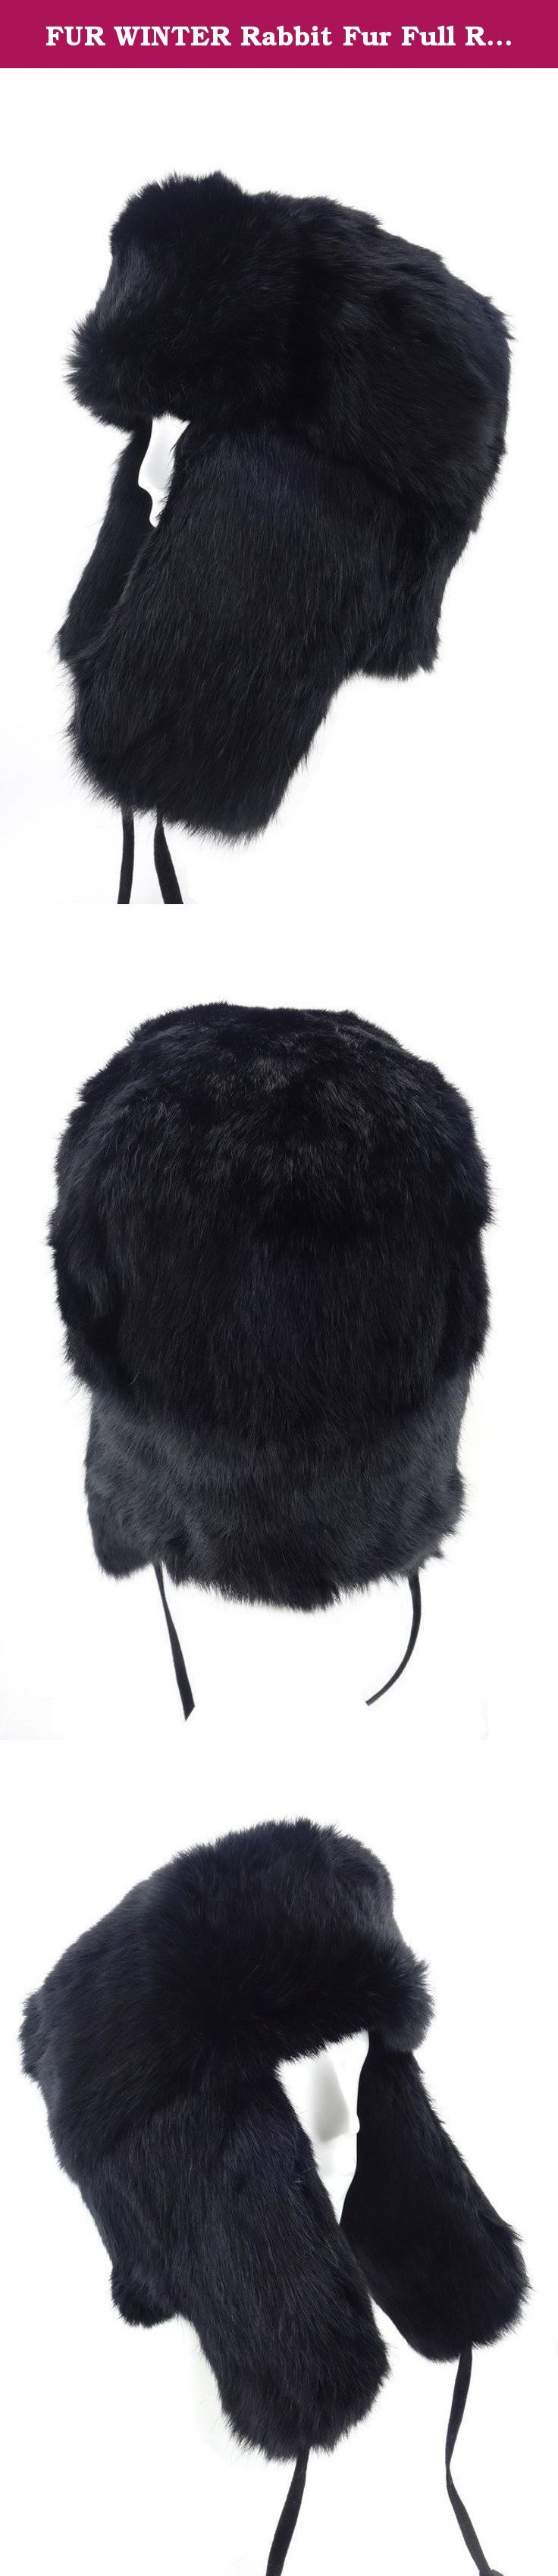 FUR WINTER Rabbit Fur Full Russian Ushanka Soviet Army Military Soldier Hat BLK M. FUR WINTER Full Russian Hat, we put our half century professional and built our reputation on these hats which are designed for warmth and style. This FUR WINTER Rabbit Fur Full Russian Hat offers high quality with stylish design based on classic model. It was made by season rabbit fur on both sides; it not only keeps your head warm and comfortable in cold winter, but does also make you fashionable and...